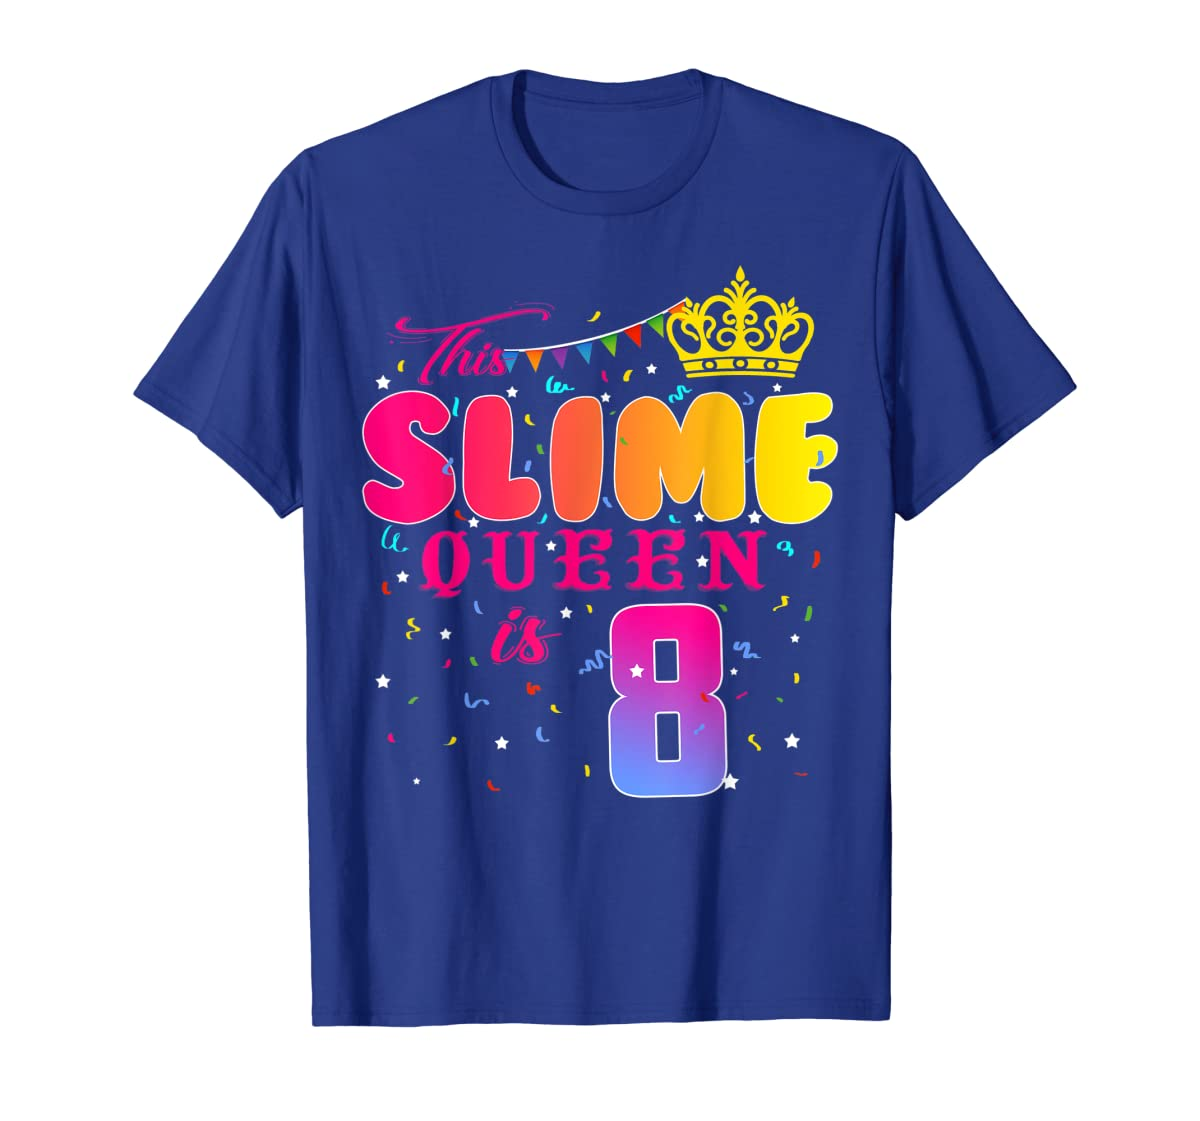 8 Years Old 8th Birthday Slime Queen Shirt Girl Gift Party-Men's T-Shirt-Royal